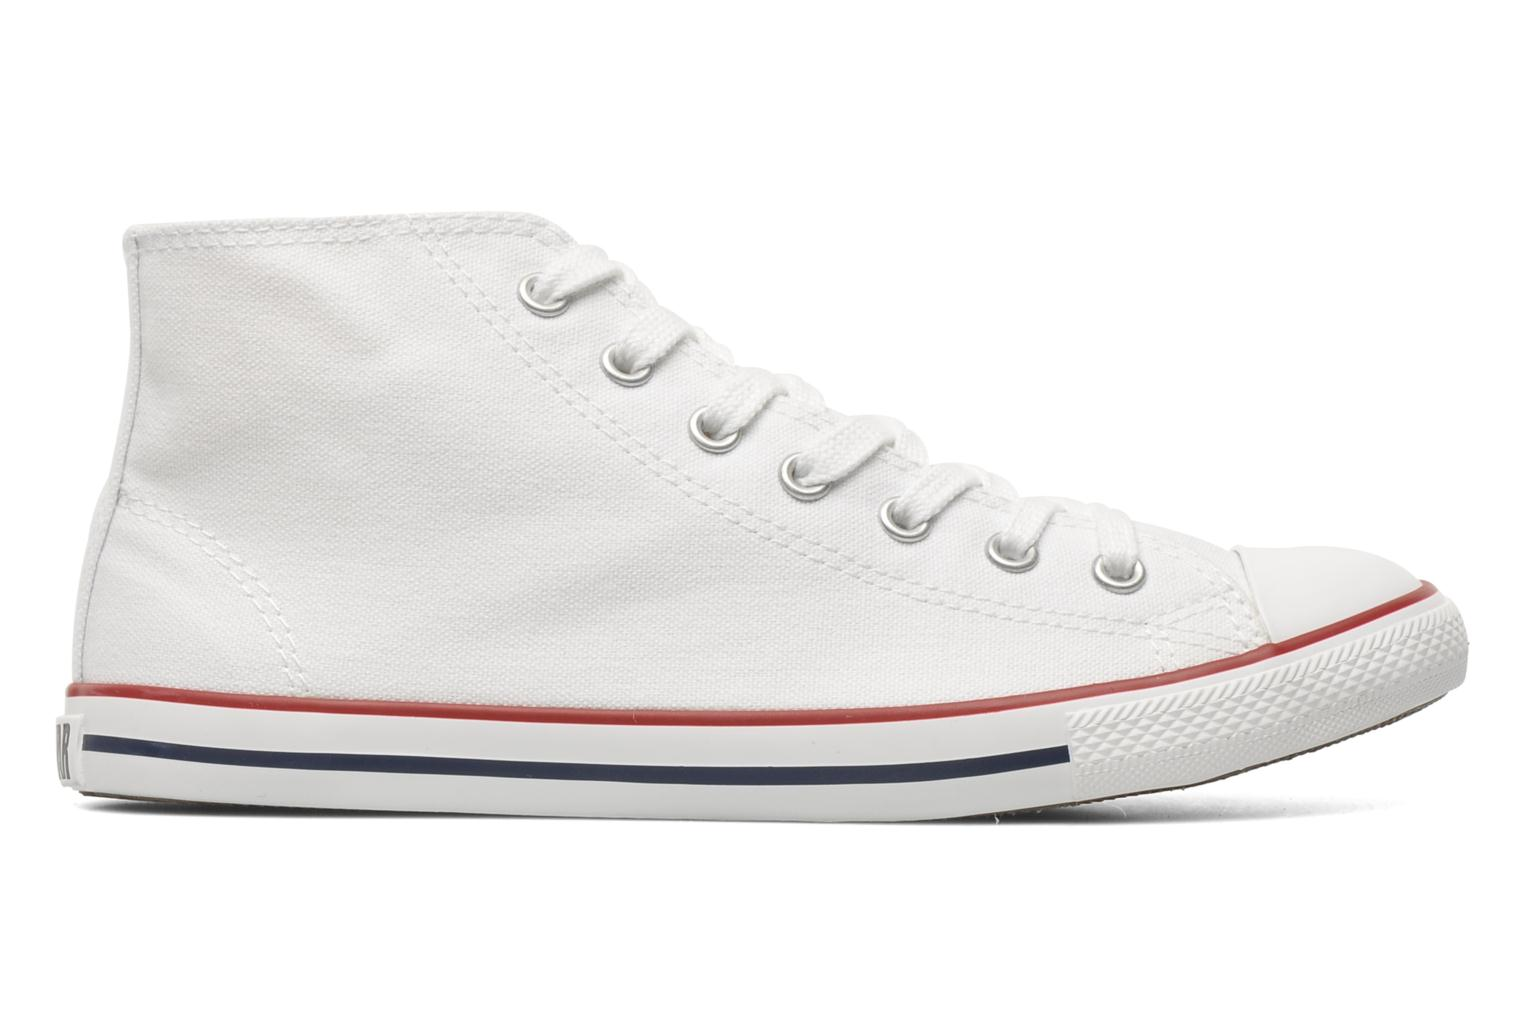 Baskets Converse All Star Dainty Canvas Mid W Blanc vue derrière